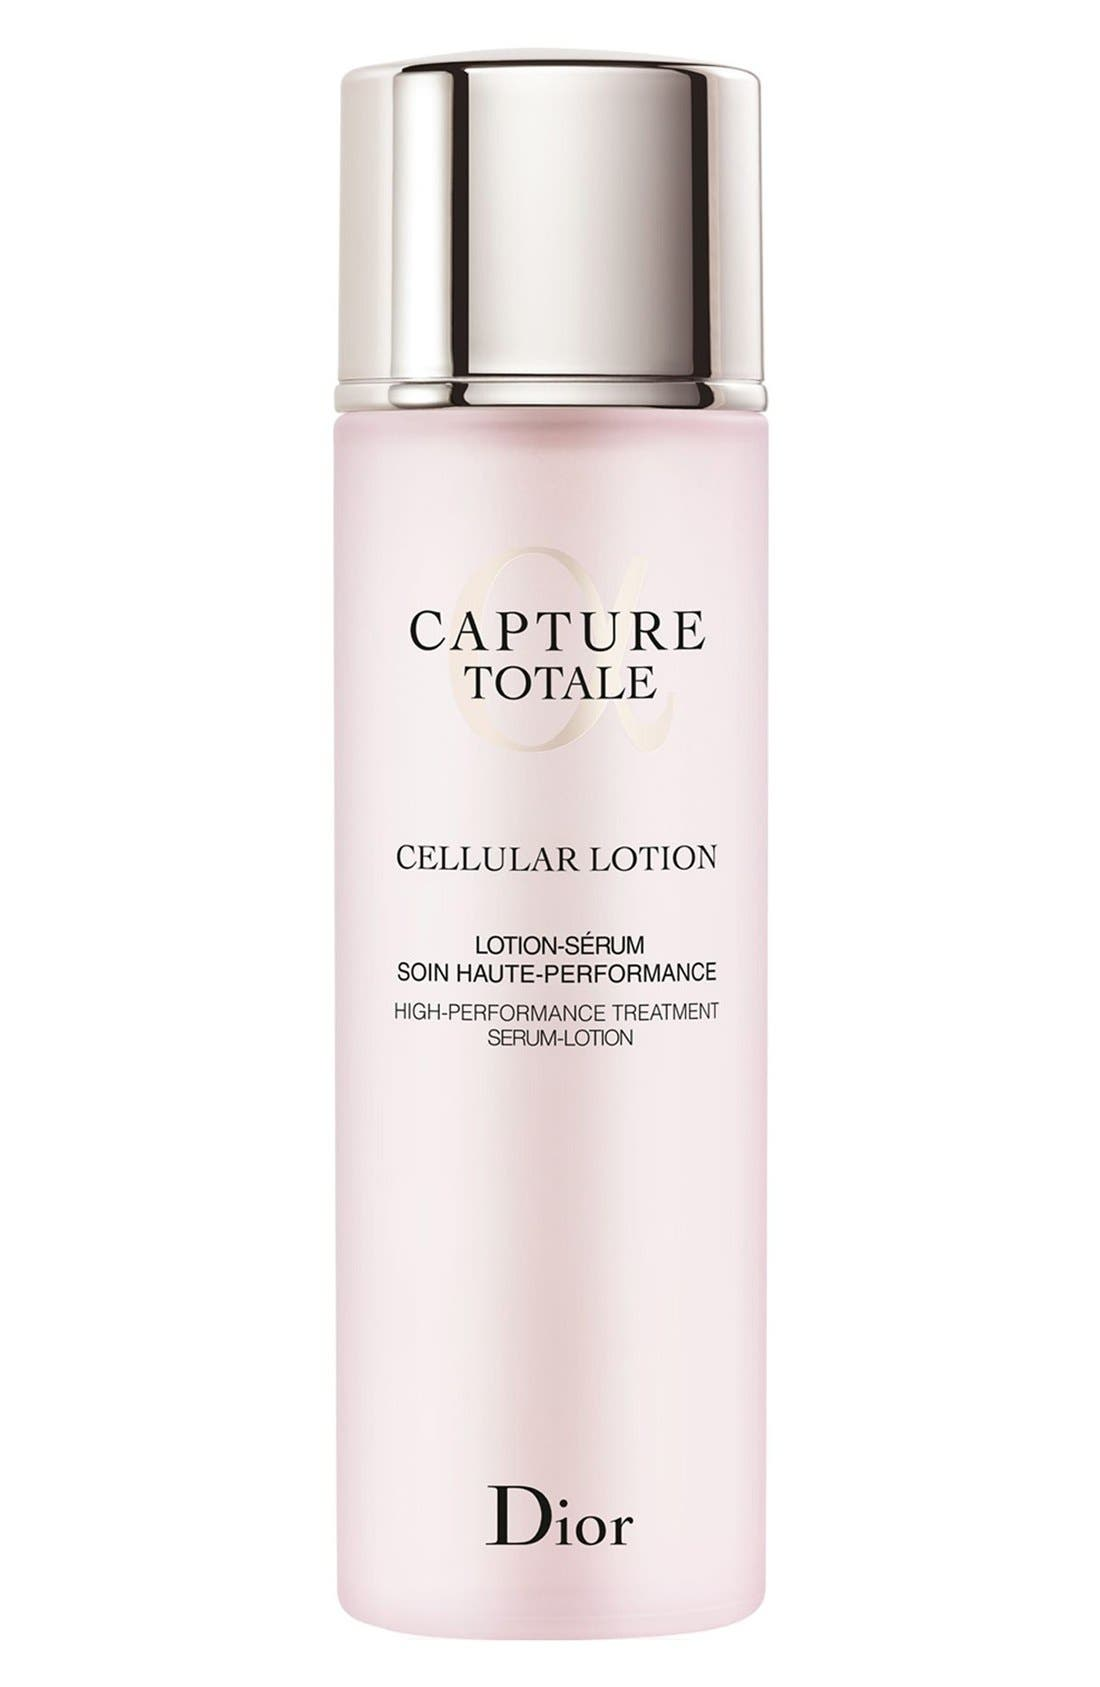 Dior 'Capture Totale' Cellular Lotion